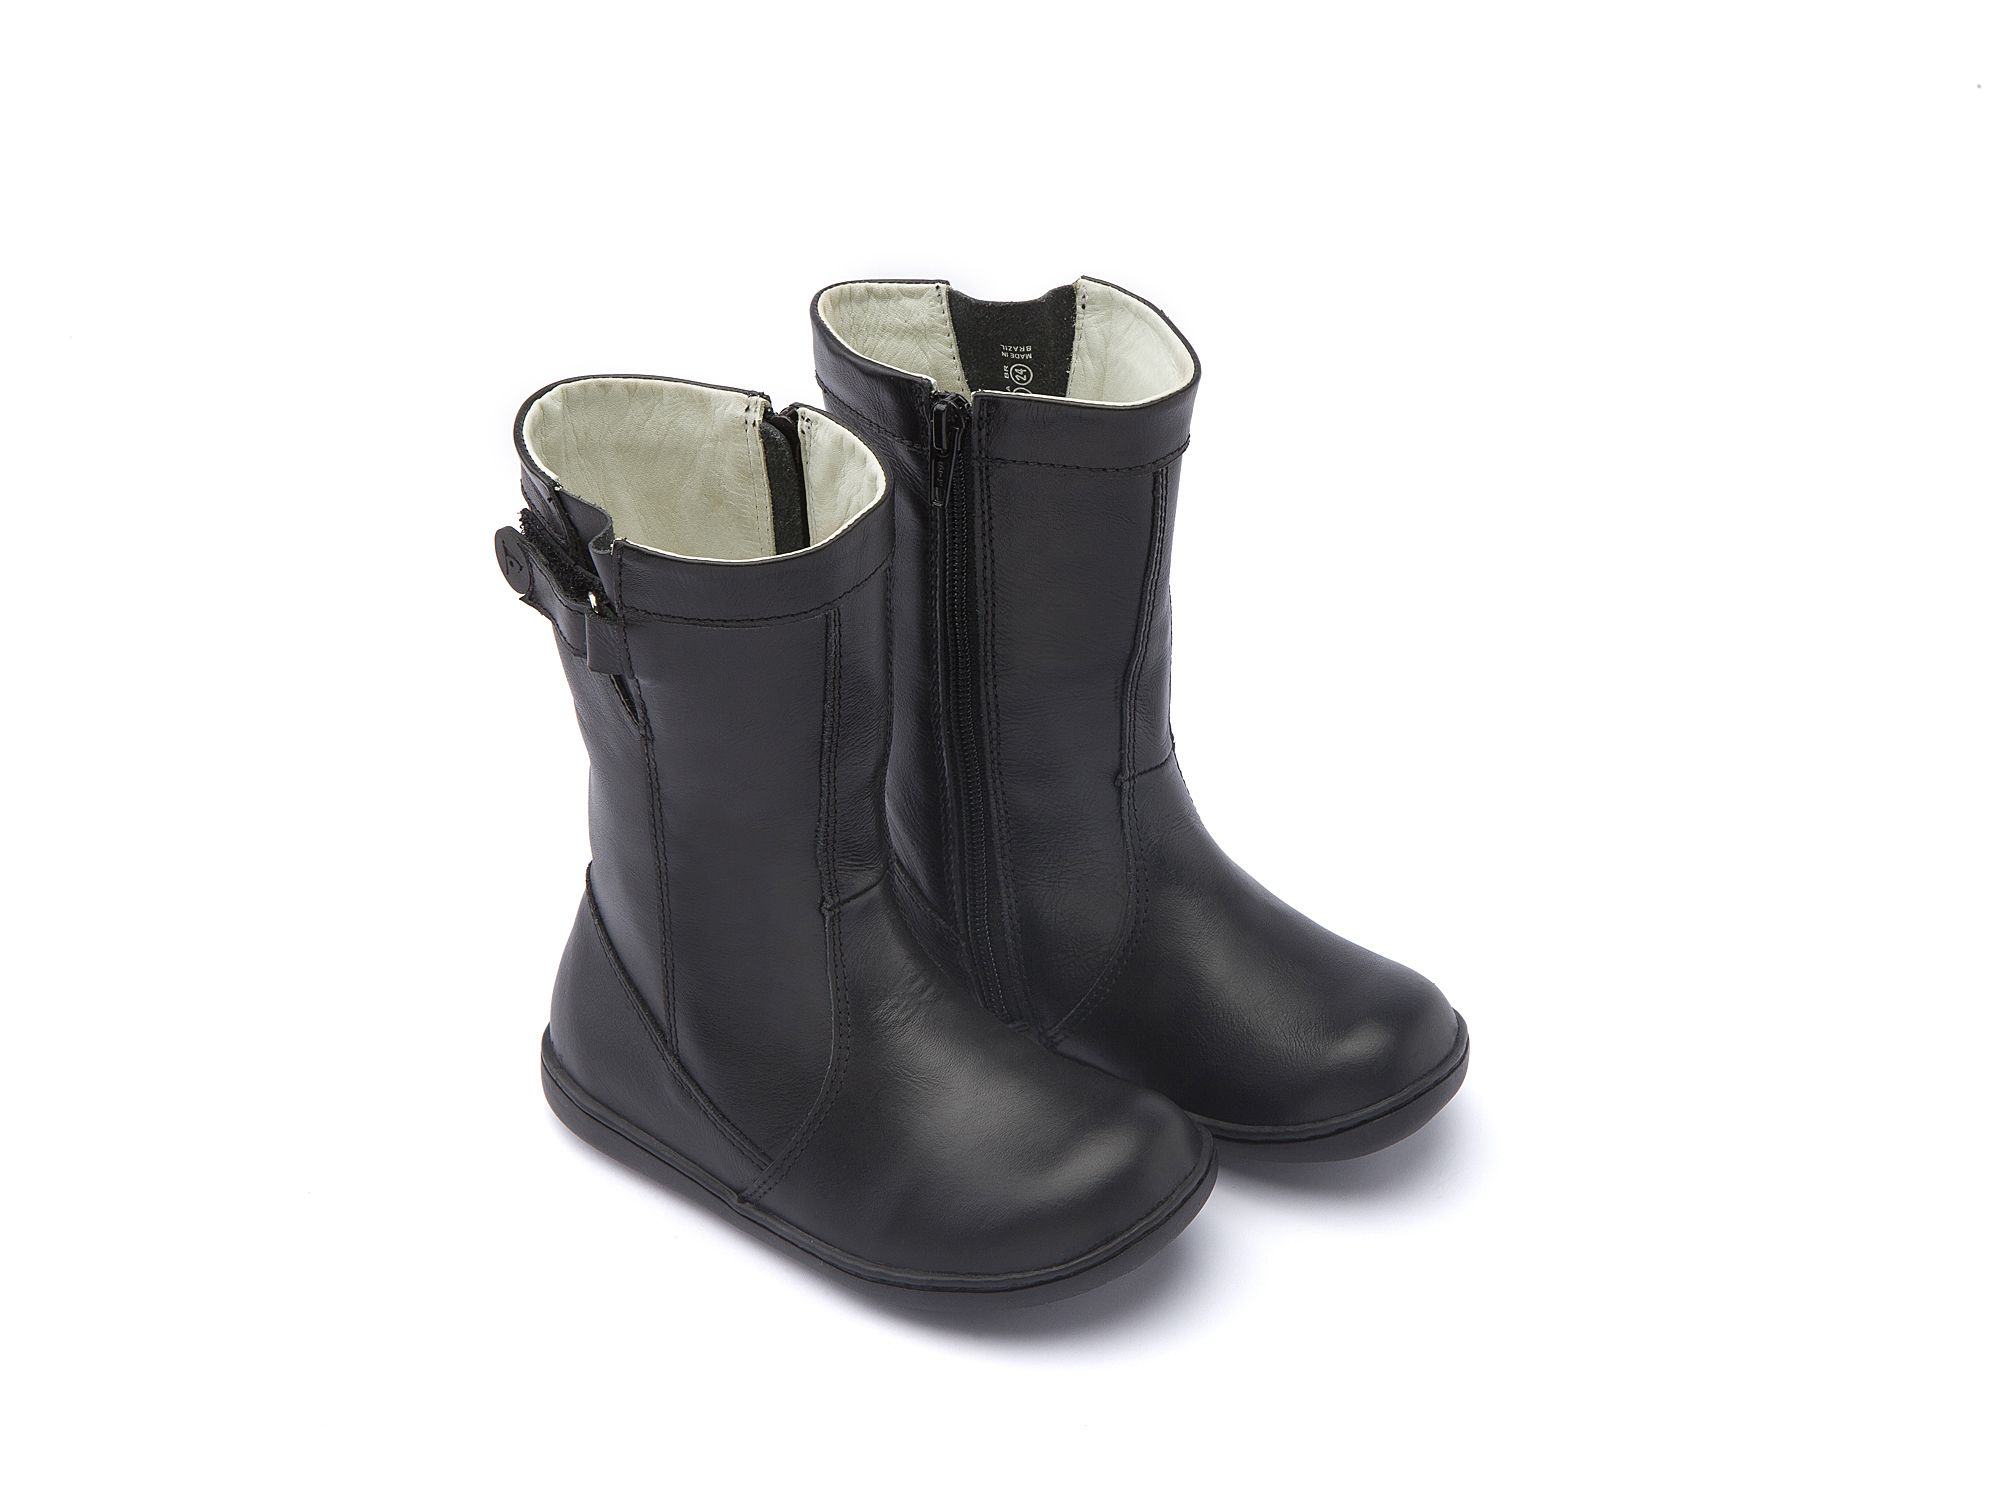 Bota Little Cold Black Toscana  Toddler 2 à 4 anos - 0